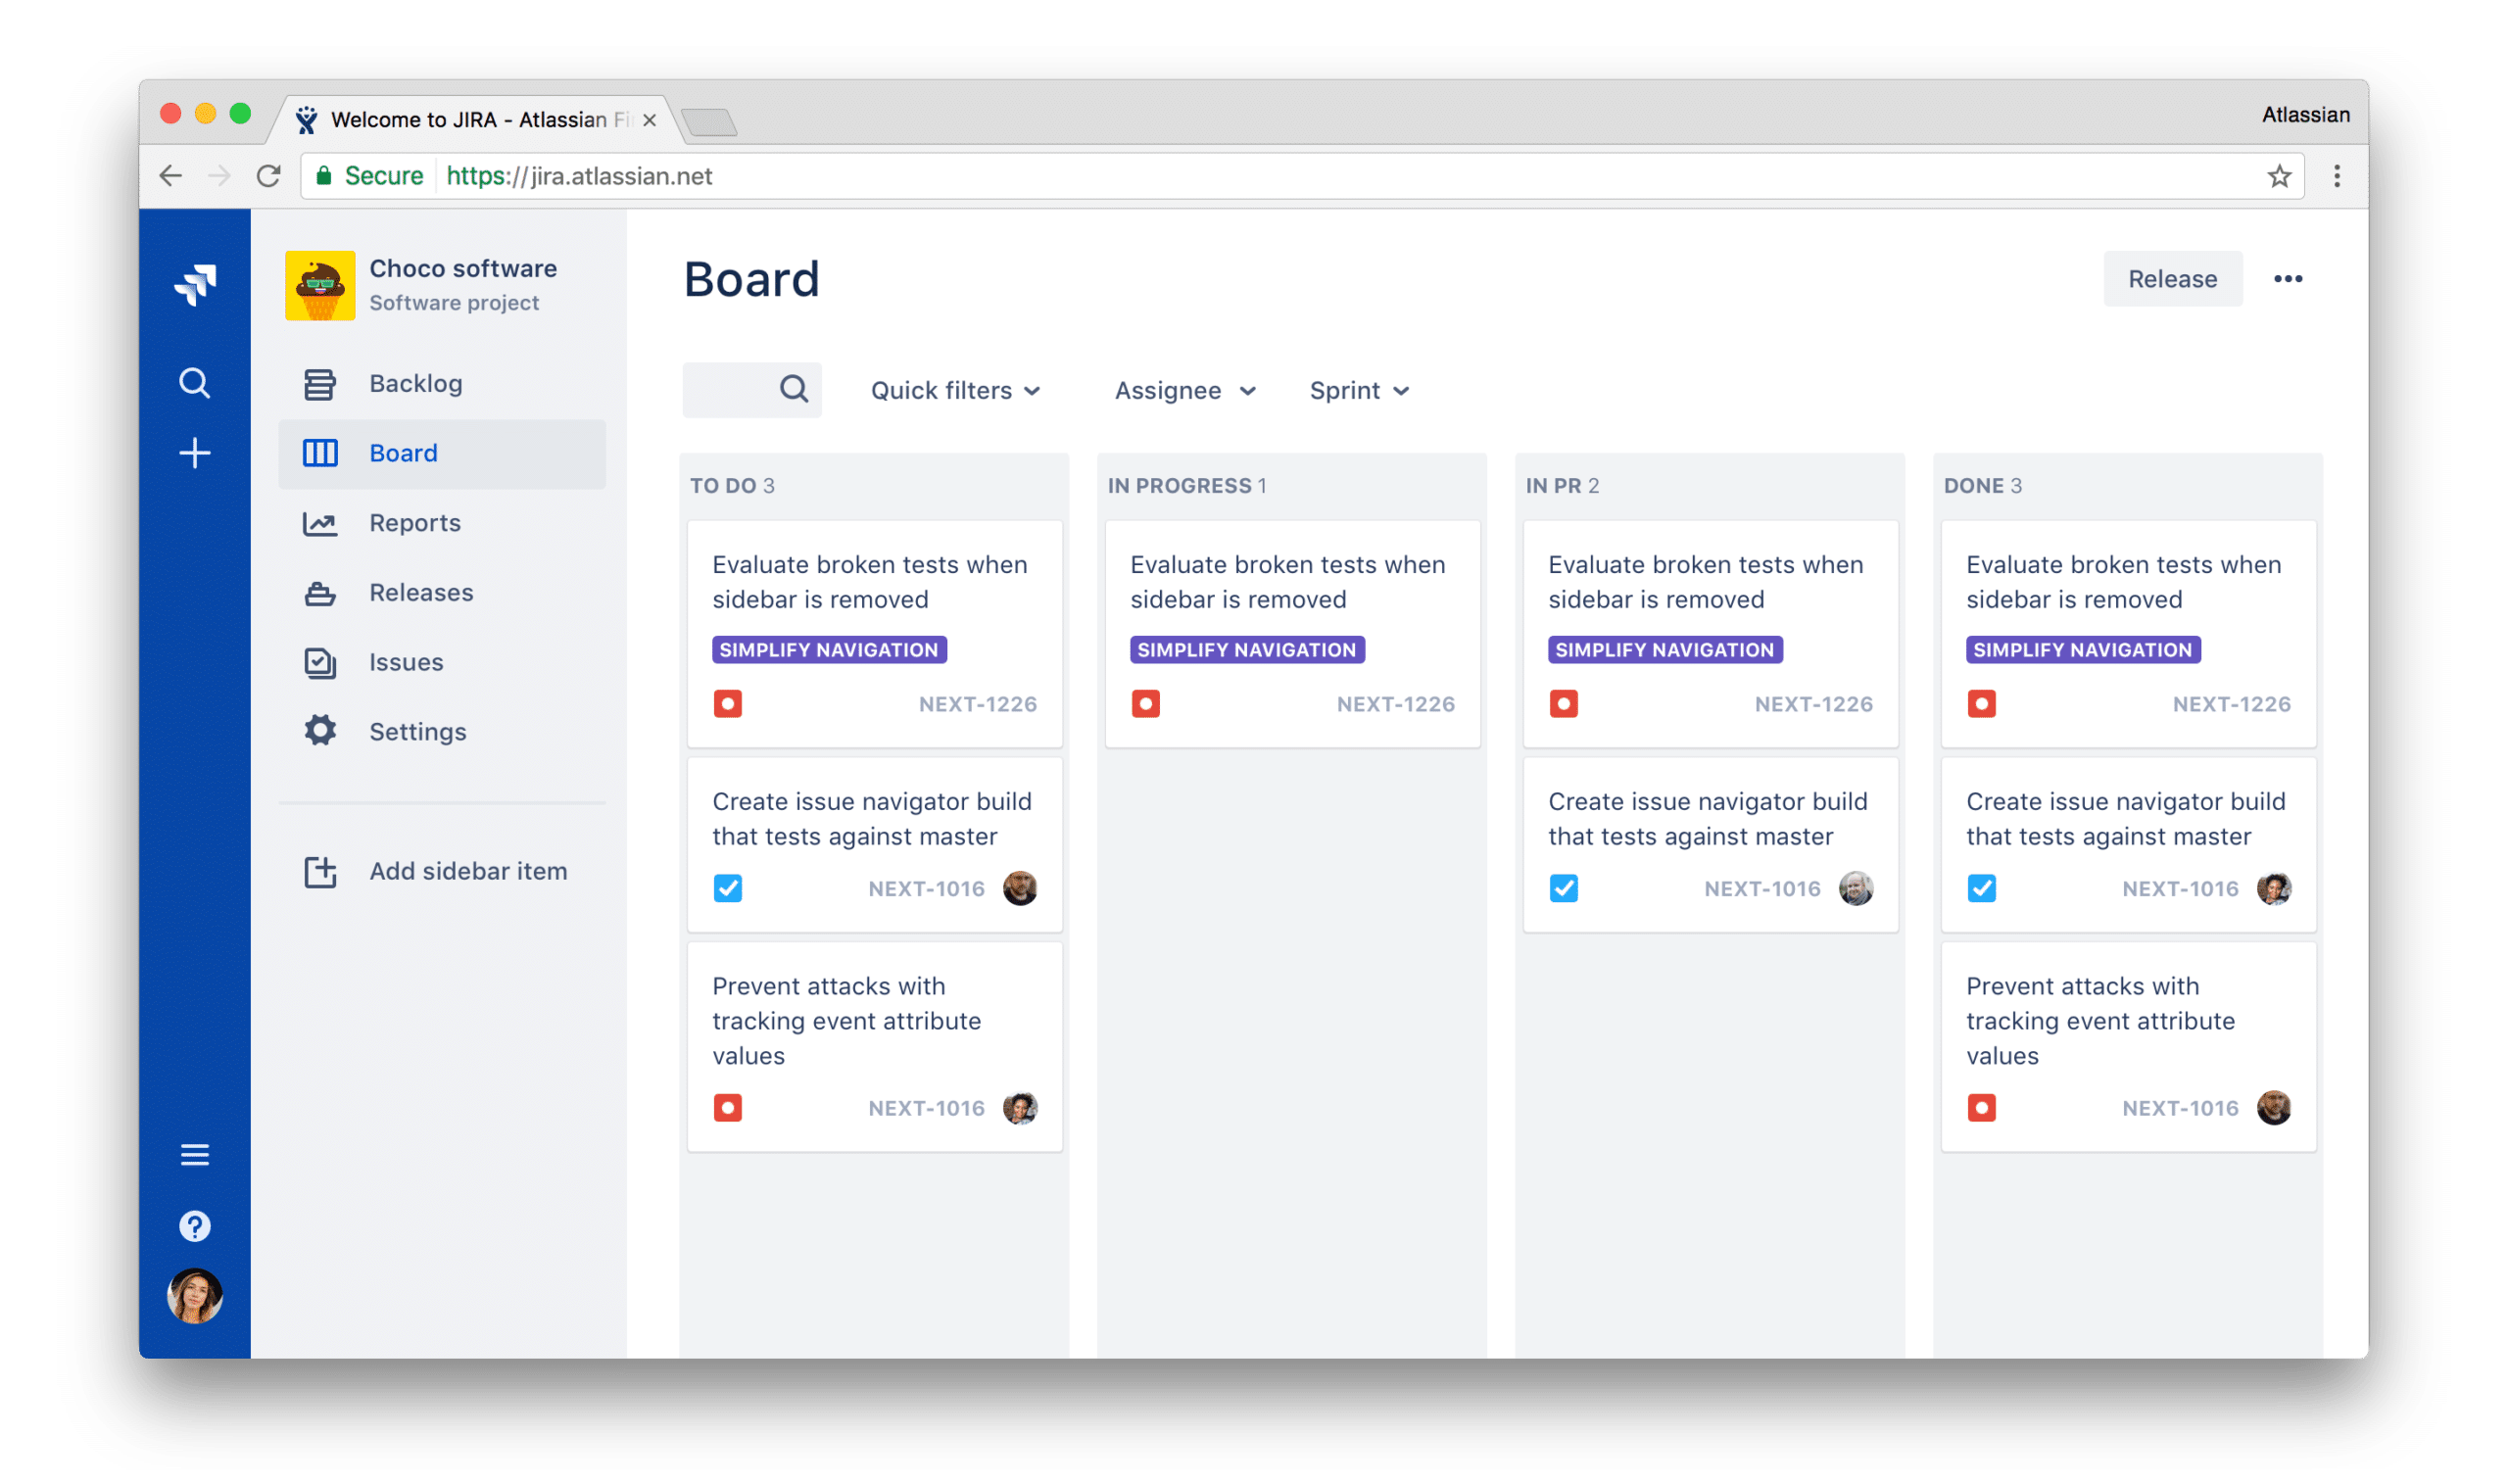 JIRA using ADG 3.0, the latest version of the design system